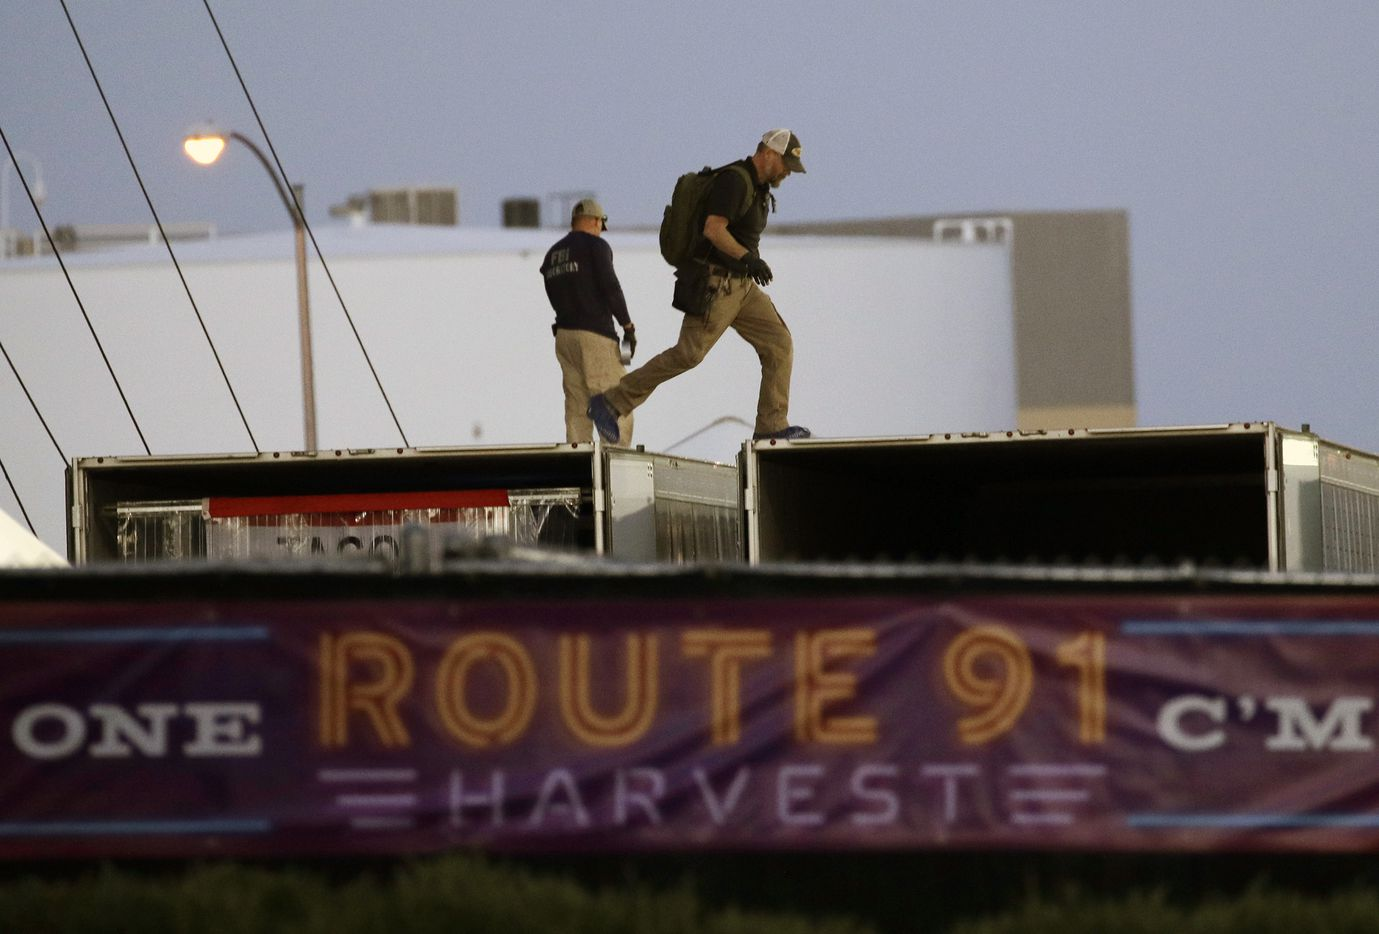 FBI agents walk on the roof of boxes inside the concert grounds where a mass shooting occurred in Las Vegas, Tuesday, Oct. 3, 2017. Authorities are trying to determine why Stephen Paddock, a 64-year-old high-stakes gambler and retired accountant, killed dozens of people at Route 91 Harvest, a country music festival, Sunday in Las Vegas. (AP Photo/John Locher)